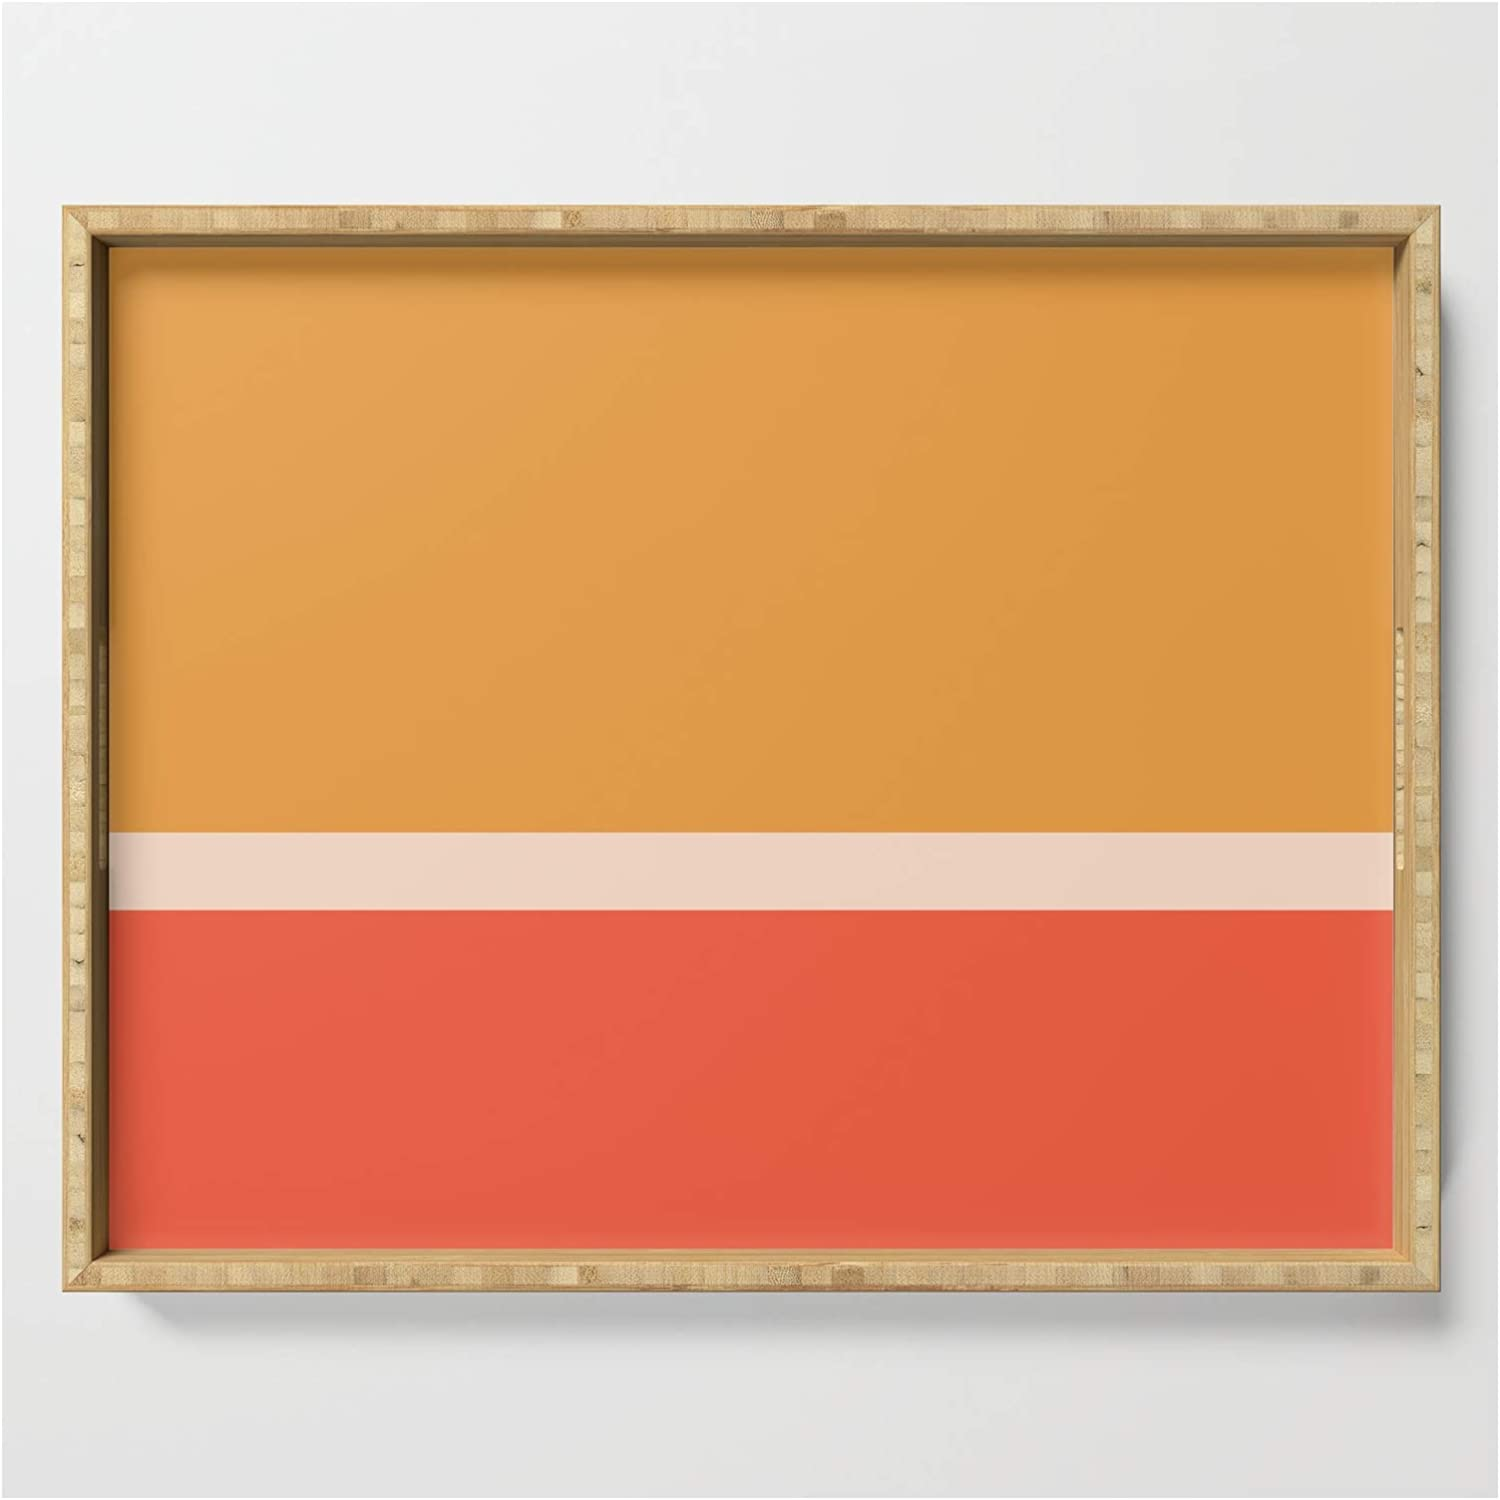 Golden Summer Max 90% OFF Color Block by Colour Poems 2 - Ii Outstanding Serving Tray on